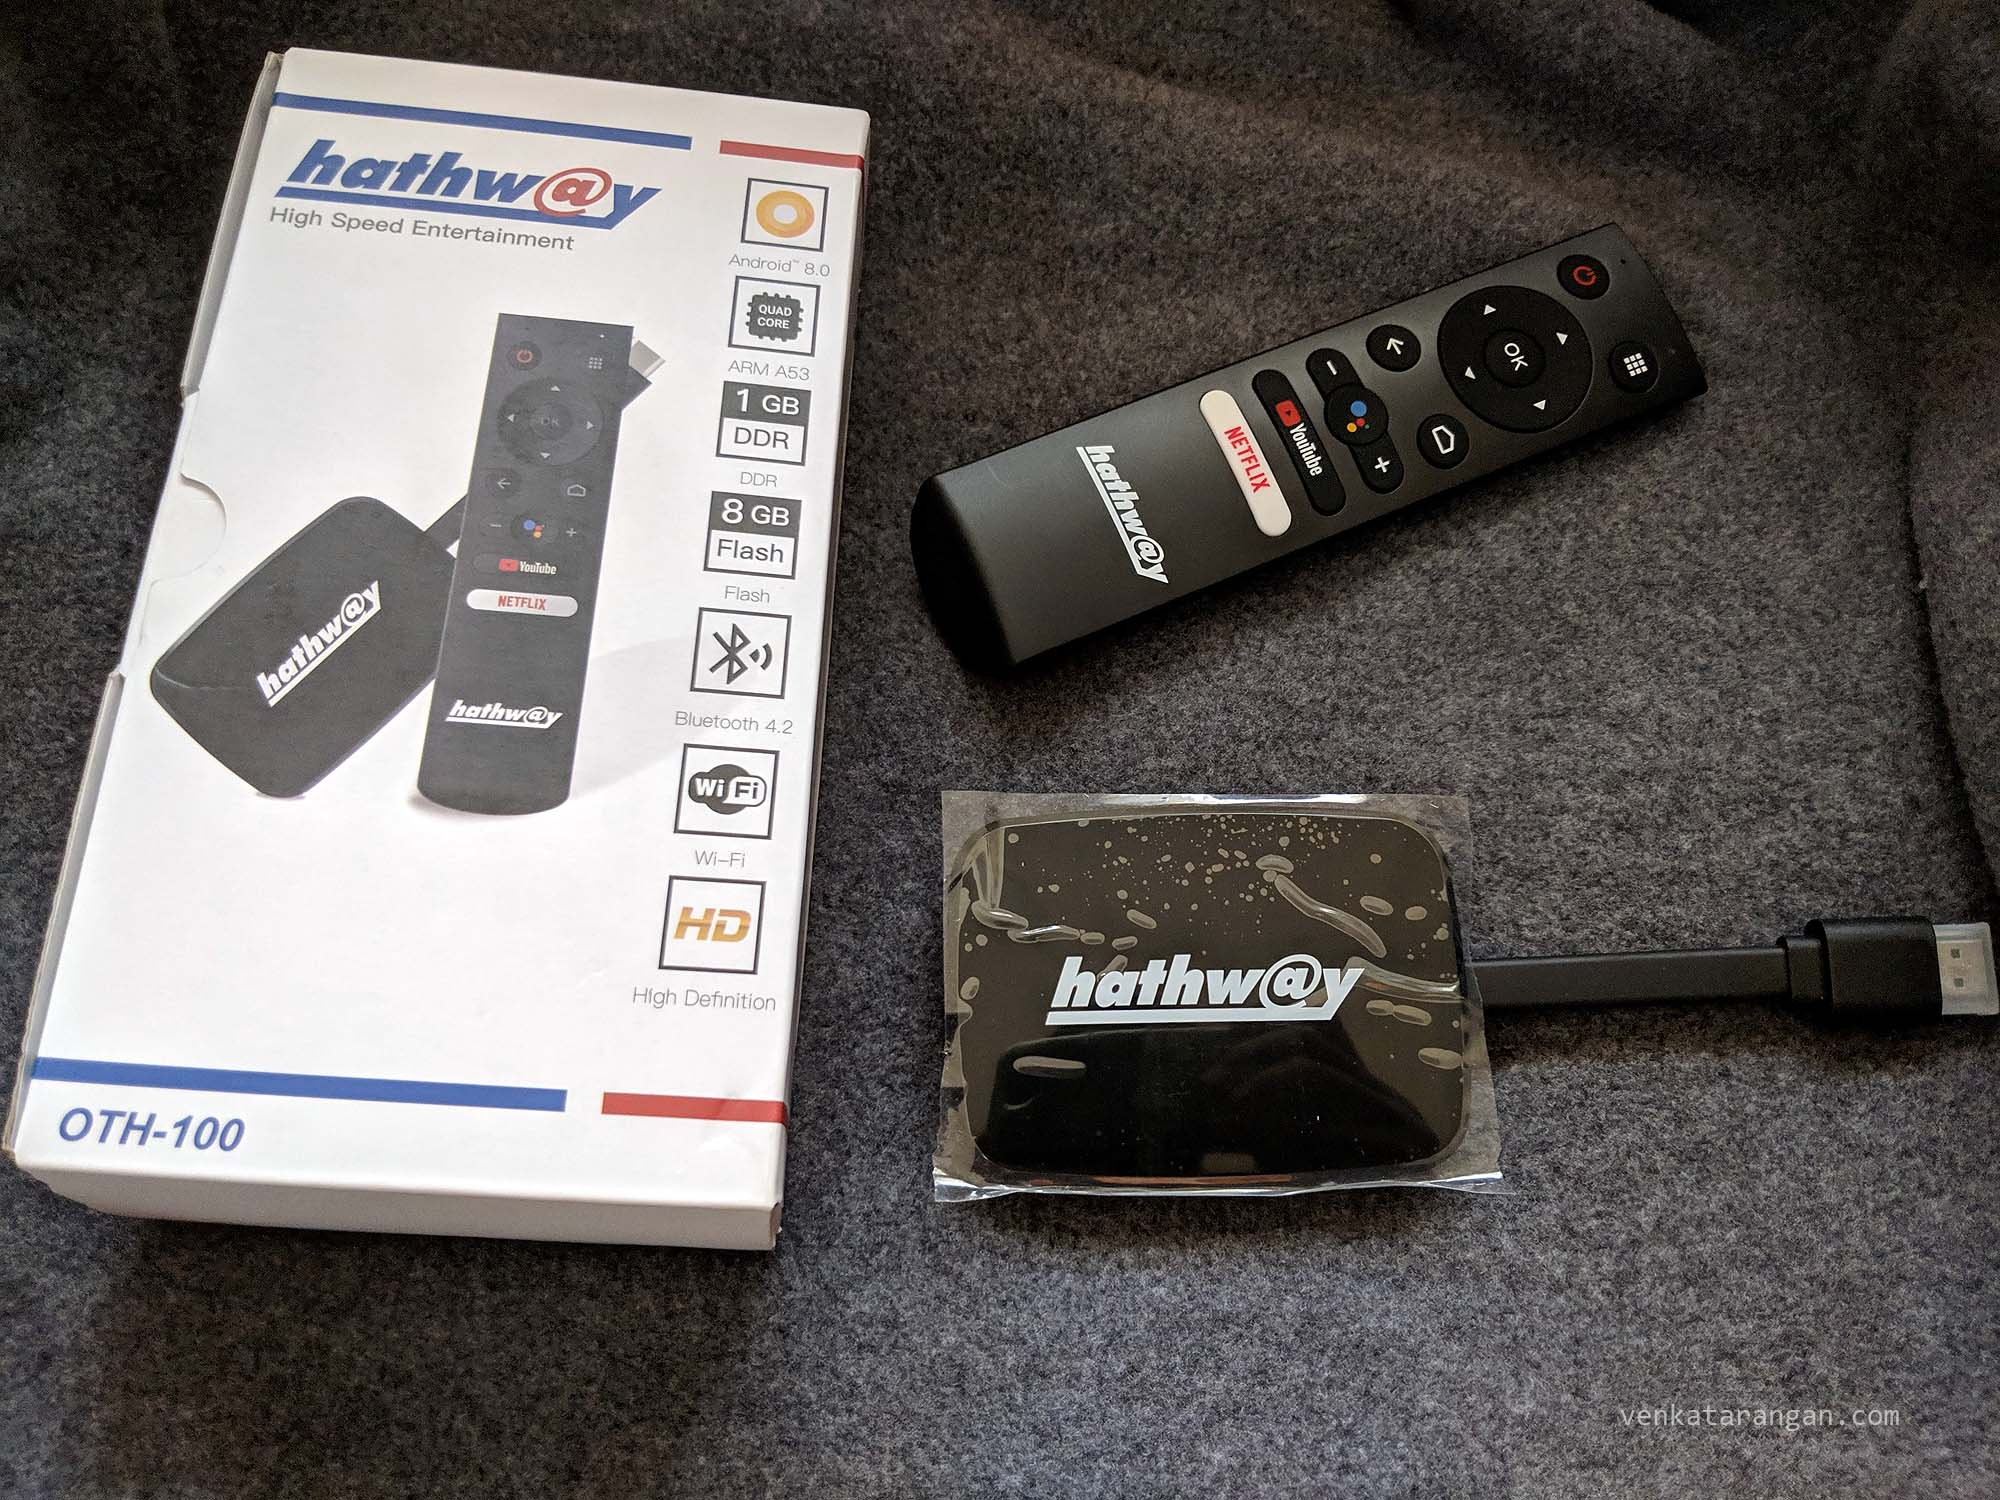 Hathway Play box running Android TV